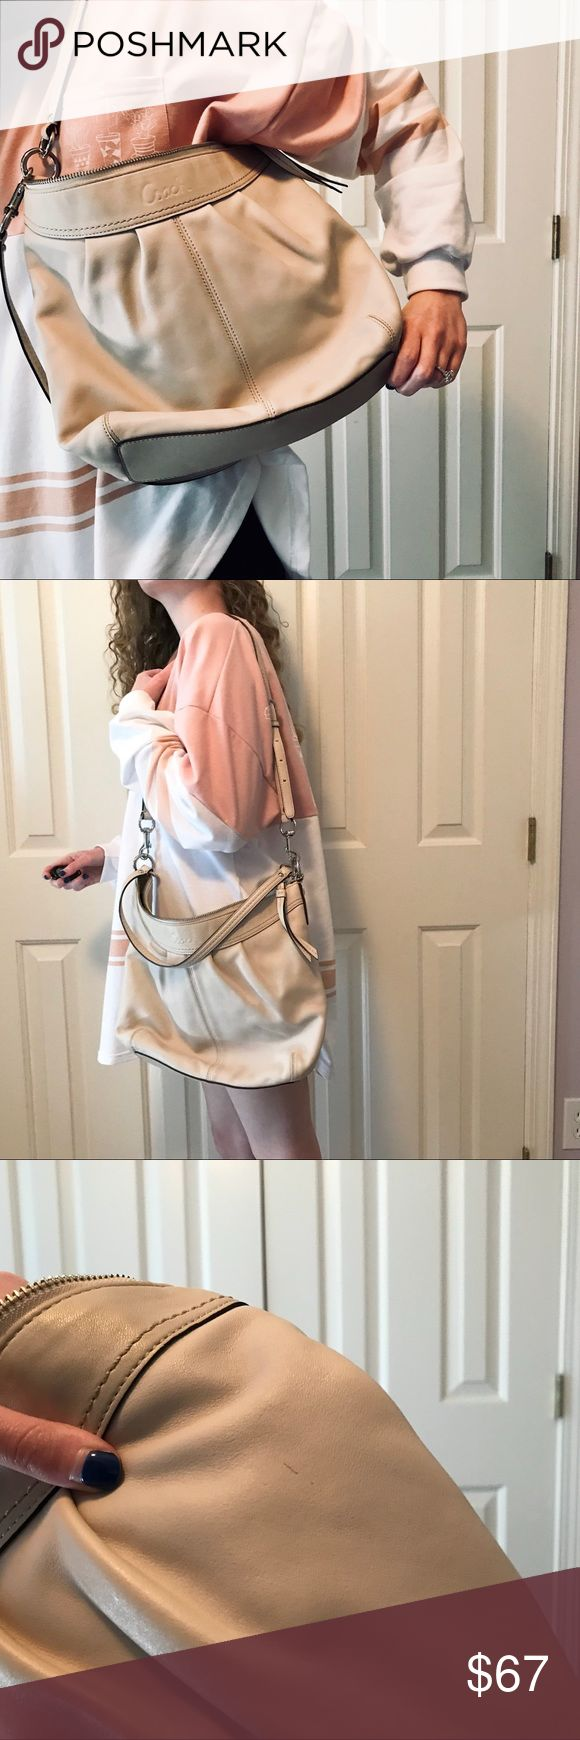 Beige Coach Shoulder Bag Beige color coach purse with shoulder strap and adjustable Crossbody strap. Hobo style that holds everything! Three pockets inside. Outside has a few small imperfections. Great condition and the perfect neutral bag for any outfit and any occasion! Coach Bags Shoulder Bags